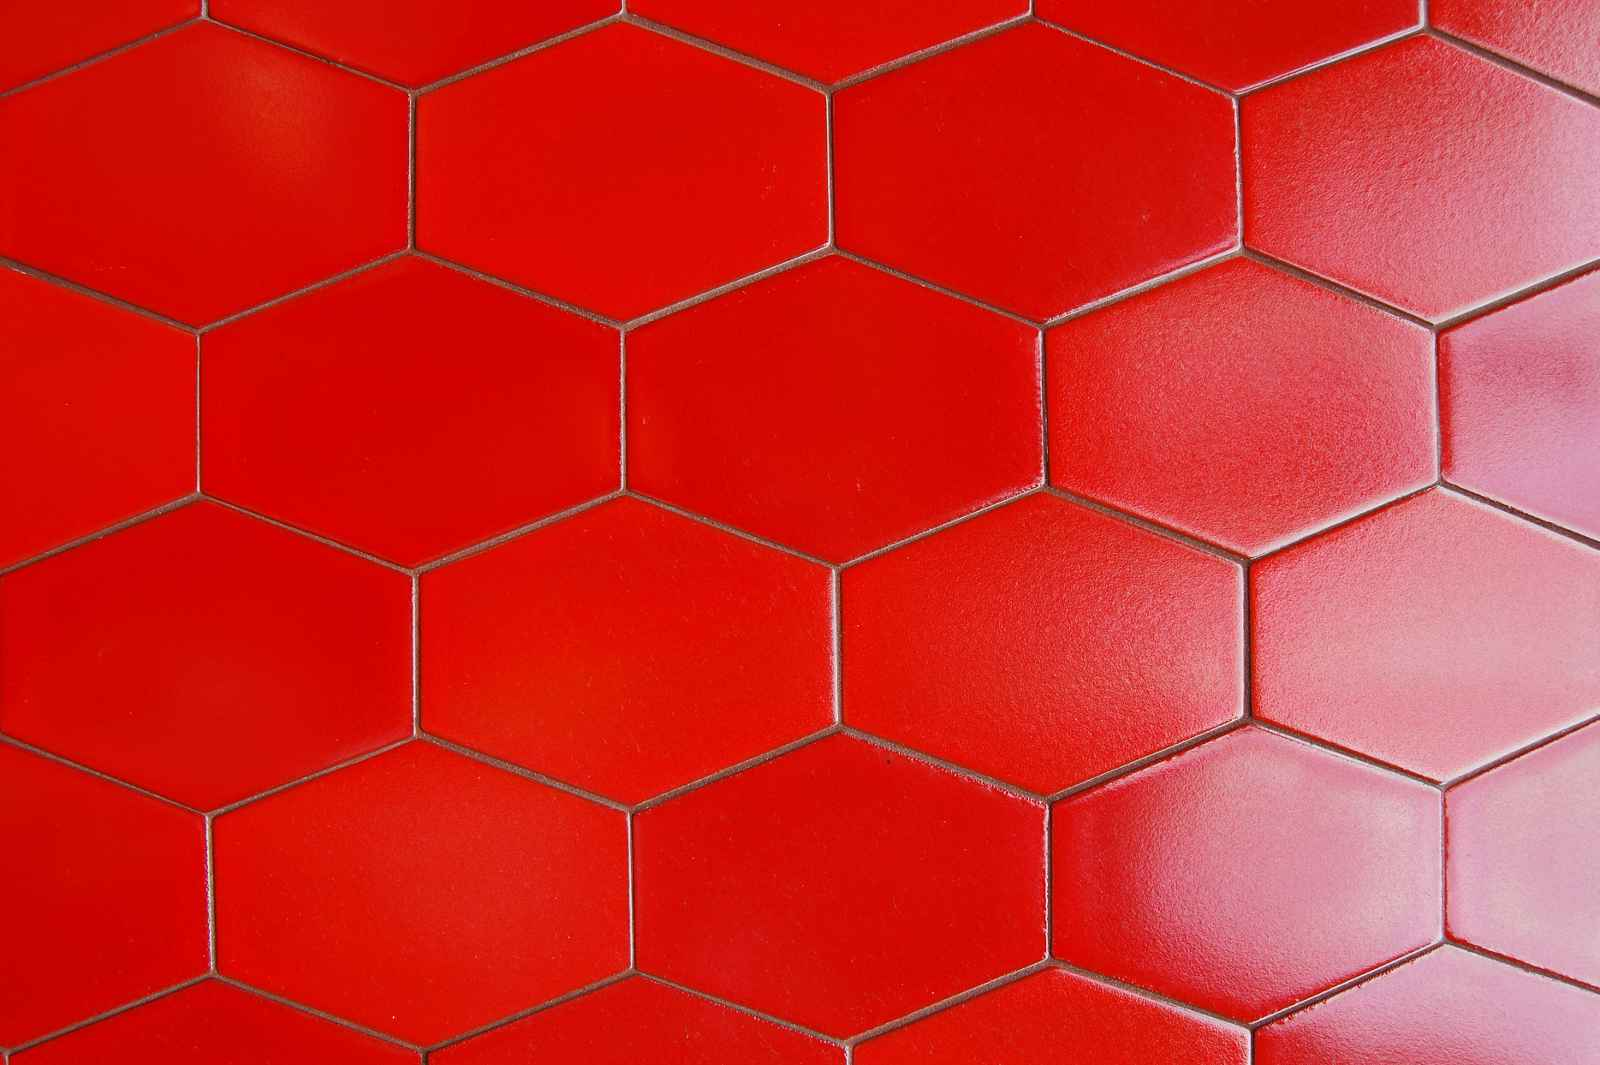 red ceramic floor tiles for home